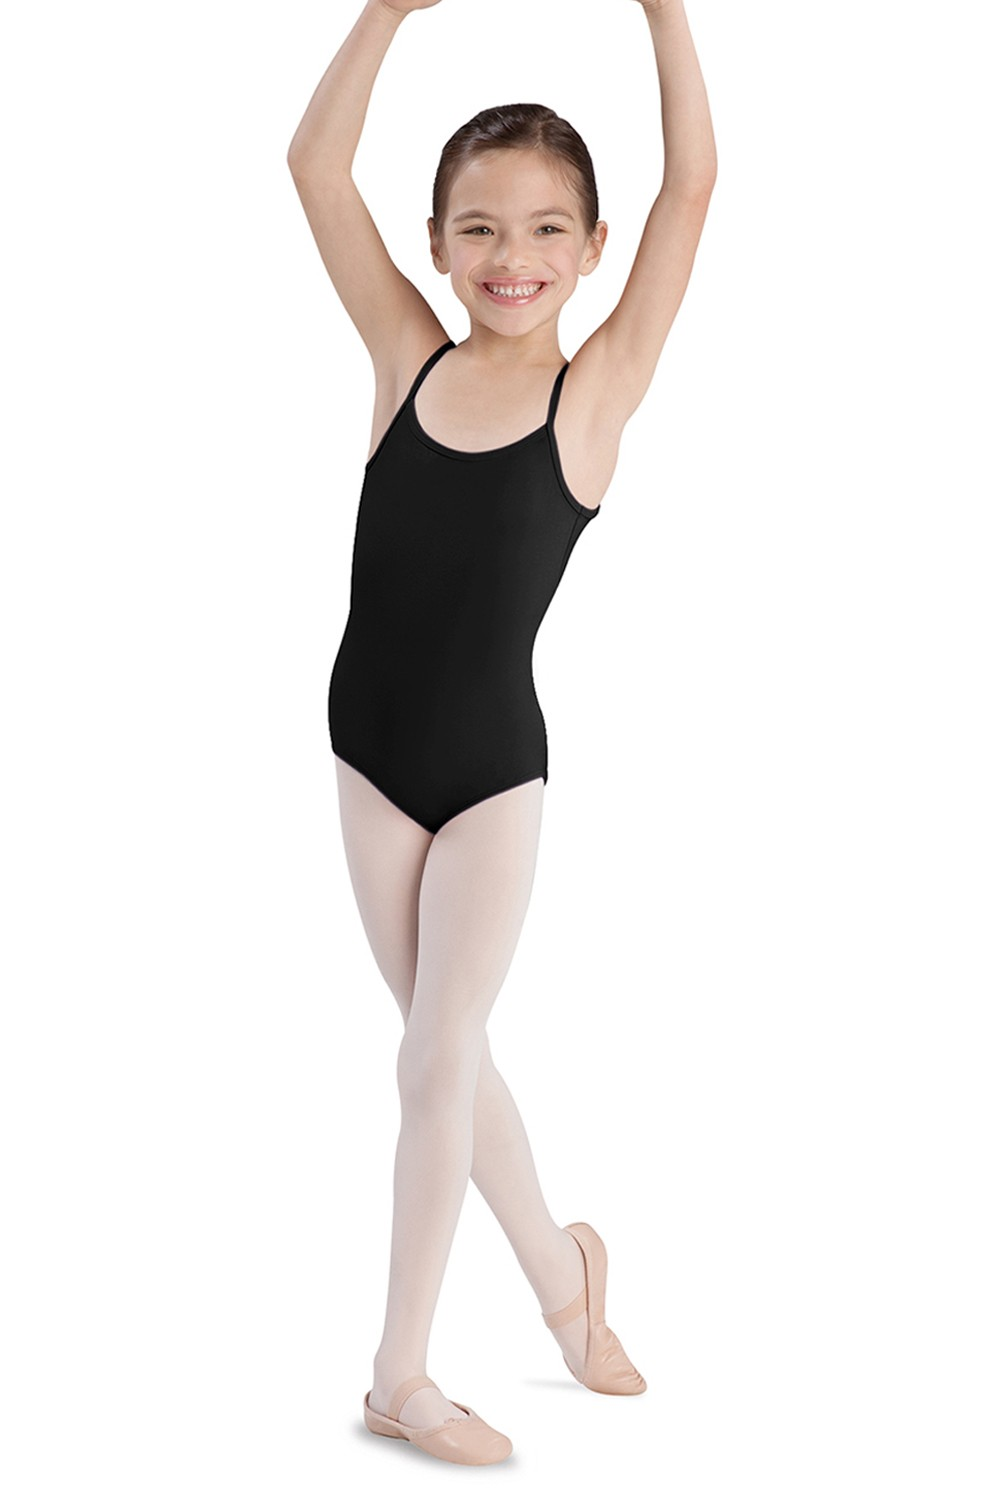 Plie Children's Dance Leotards